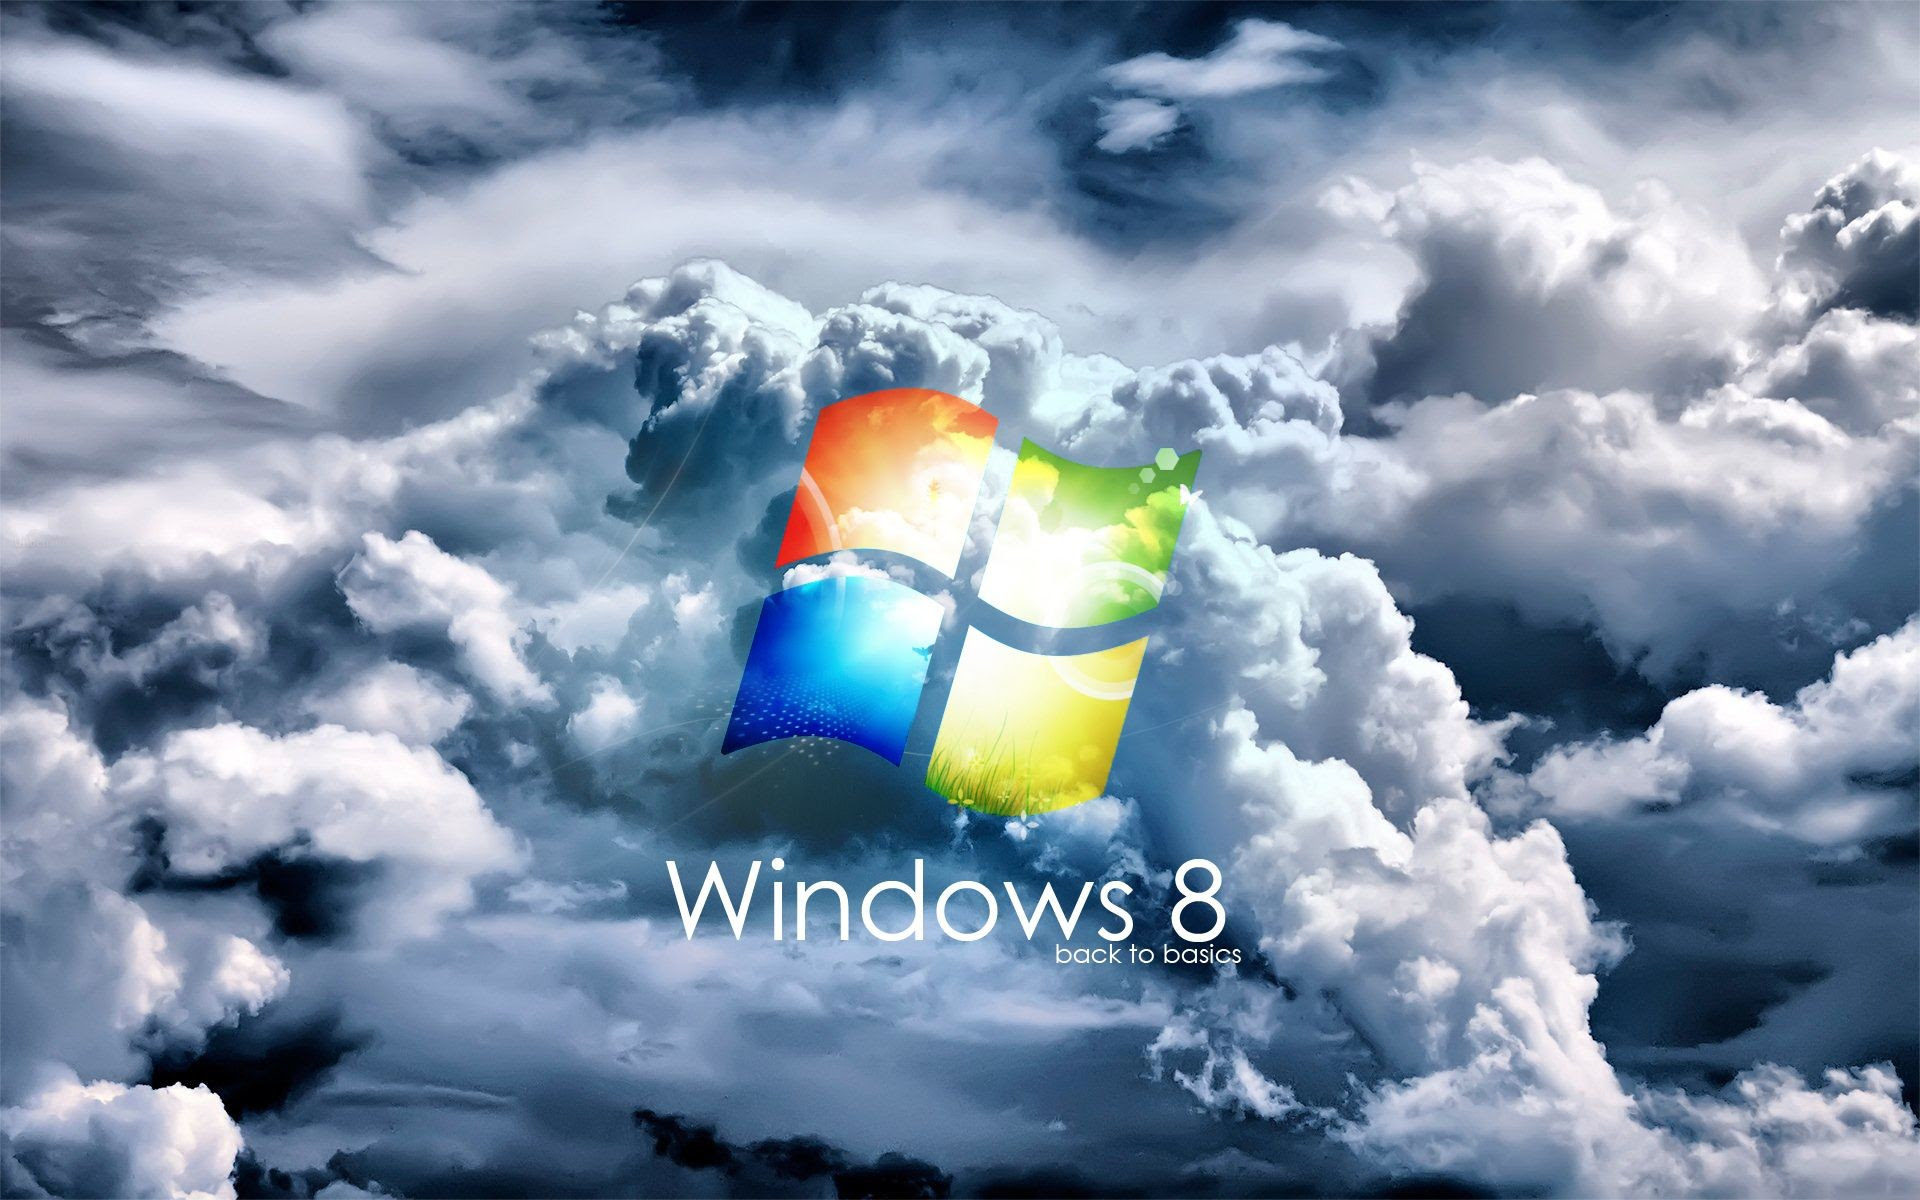 Download 70 Wallpaper 3d Pc Terbaik